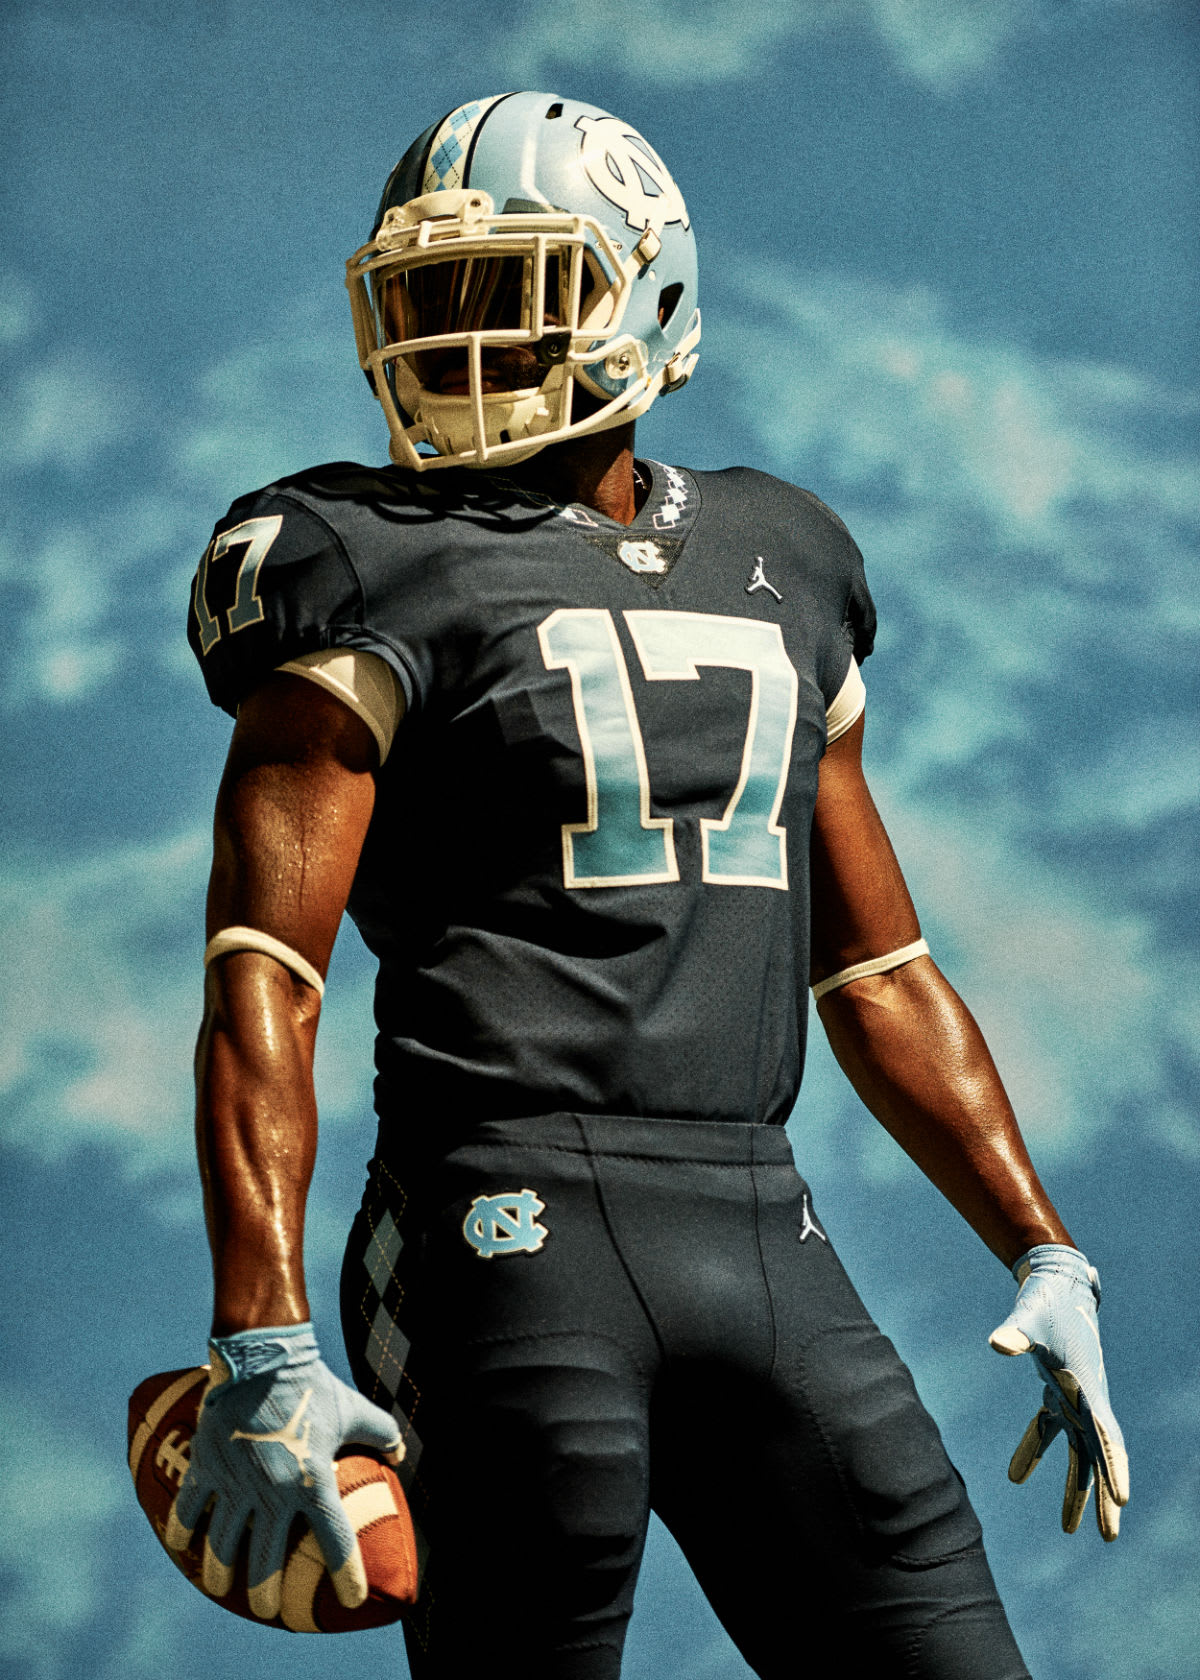 Jordan North Carolina Football Uniforms (6)